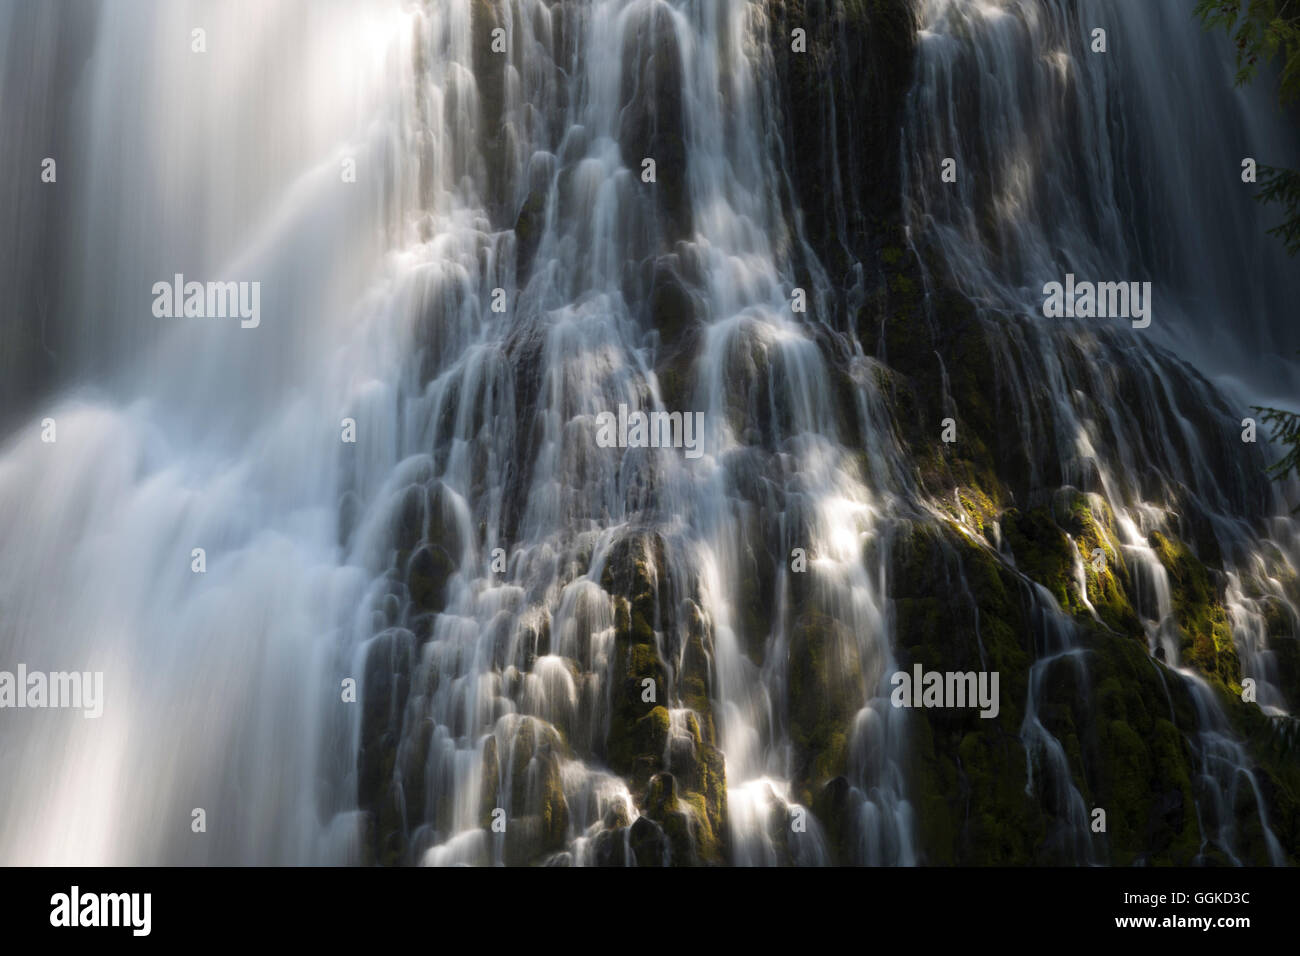 Waterfall in the Willamette National Forest, Three Sisters Wilderness, Oregon, USA Stock Photo